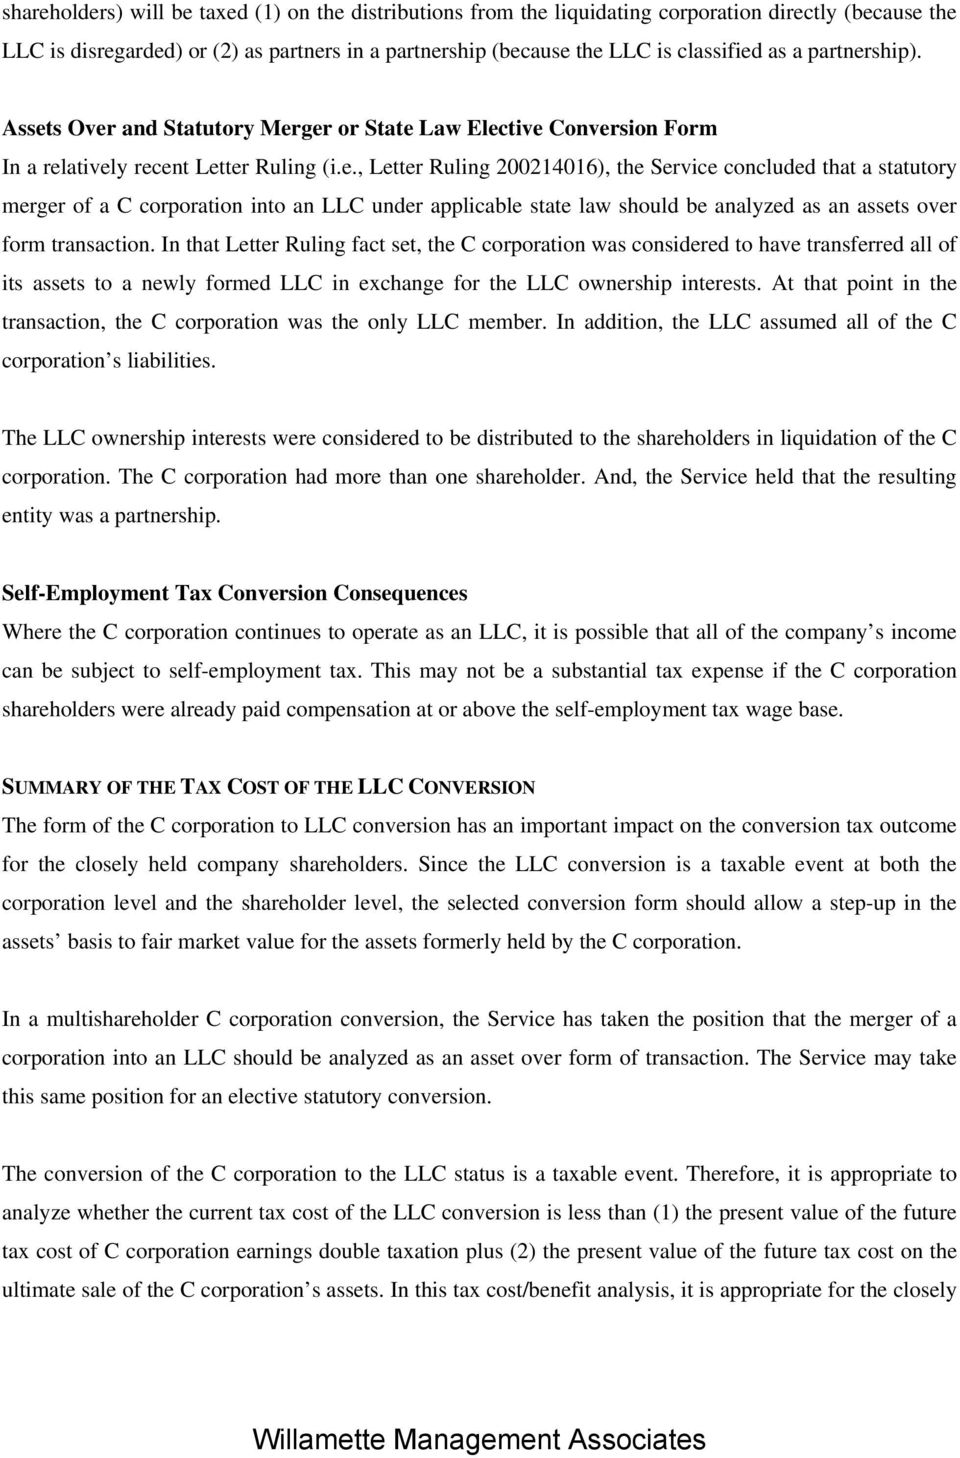 In that Letter Ruling fact set, the C corporation was considered to have transferred all of its assets to a newly formed LLC in exchange for the LLC ownership interests.